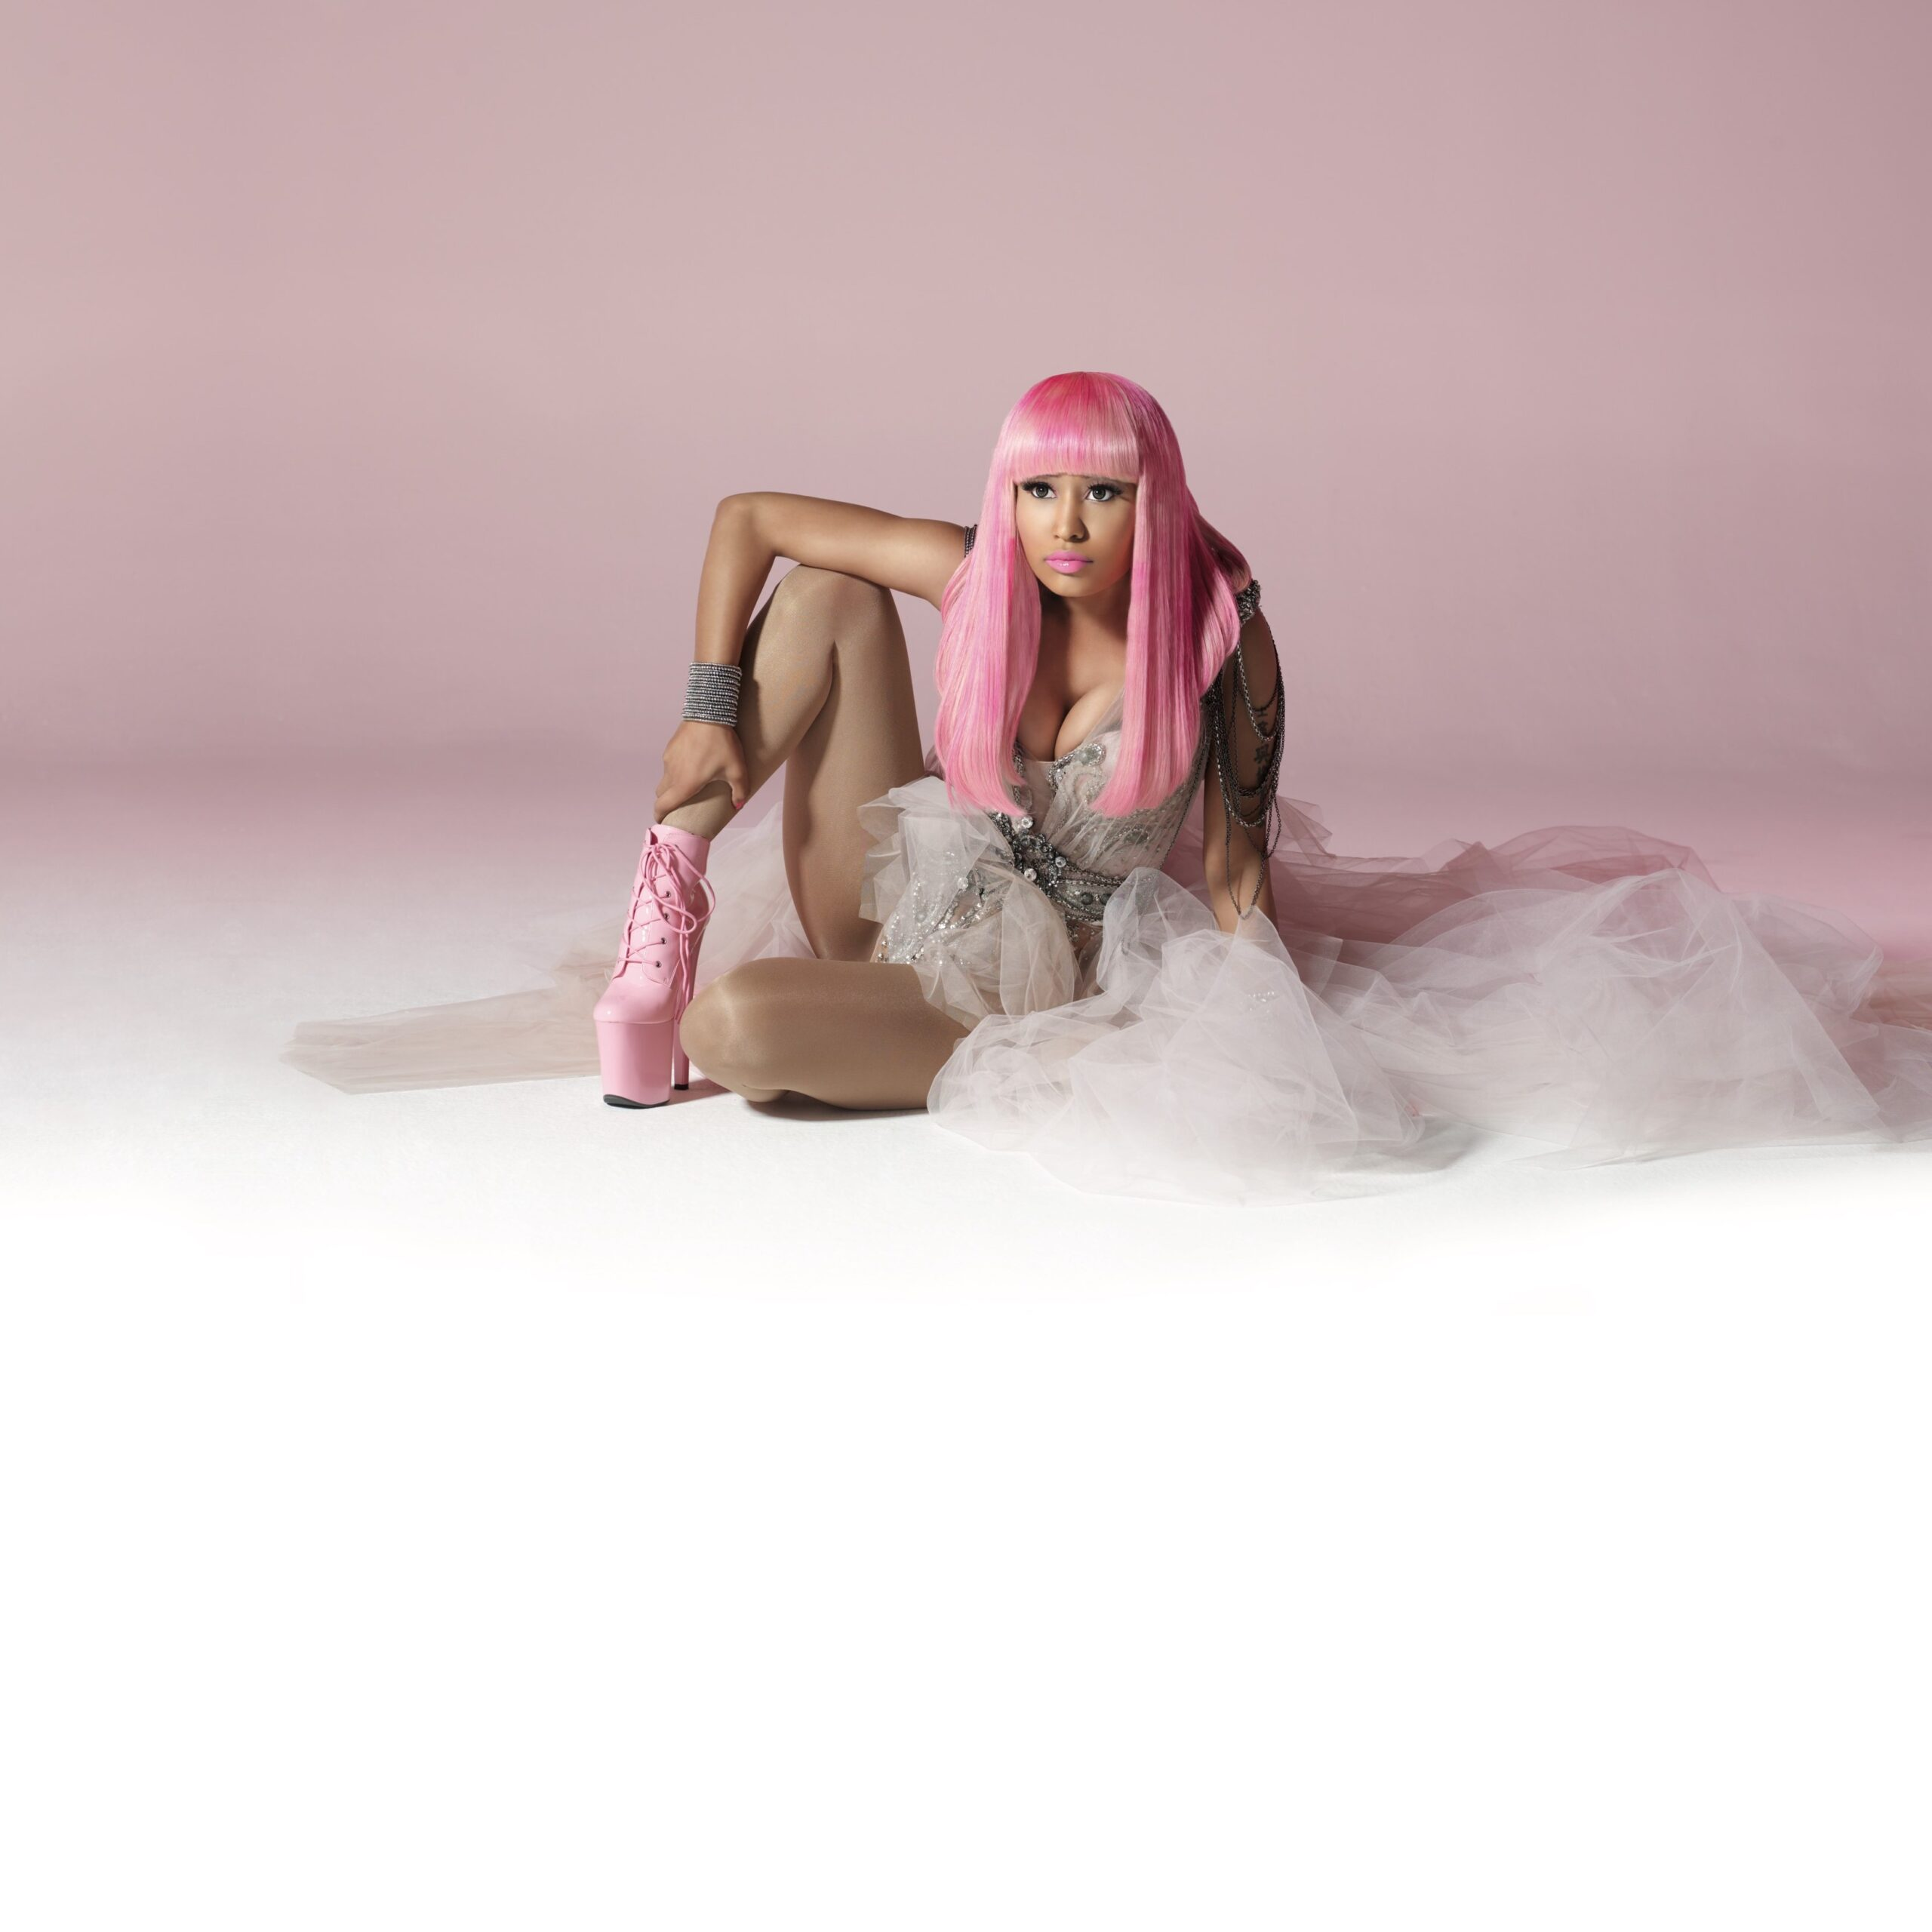 Nicki Minaj re-releases Pink Friday: The Complete Edition and it's mentioned in 360 MAGAZINE